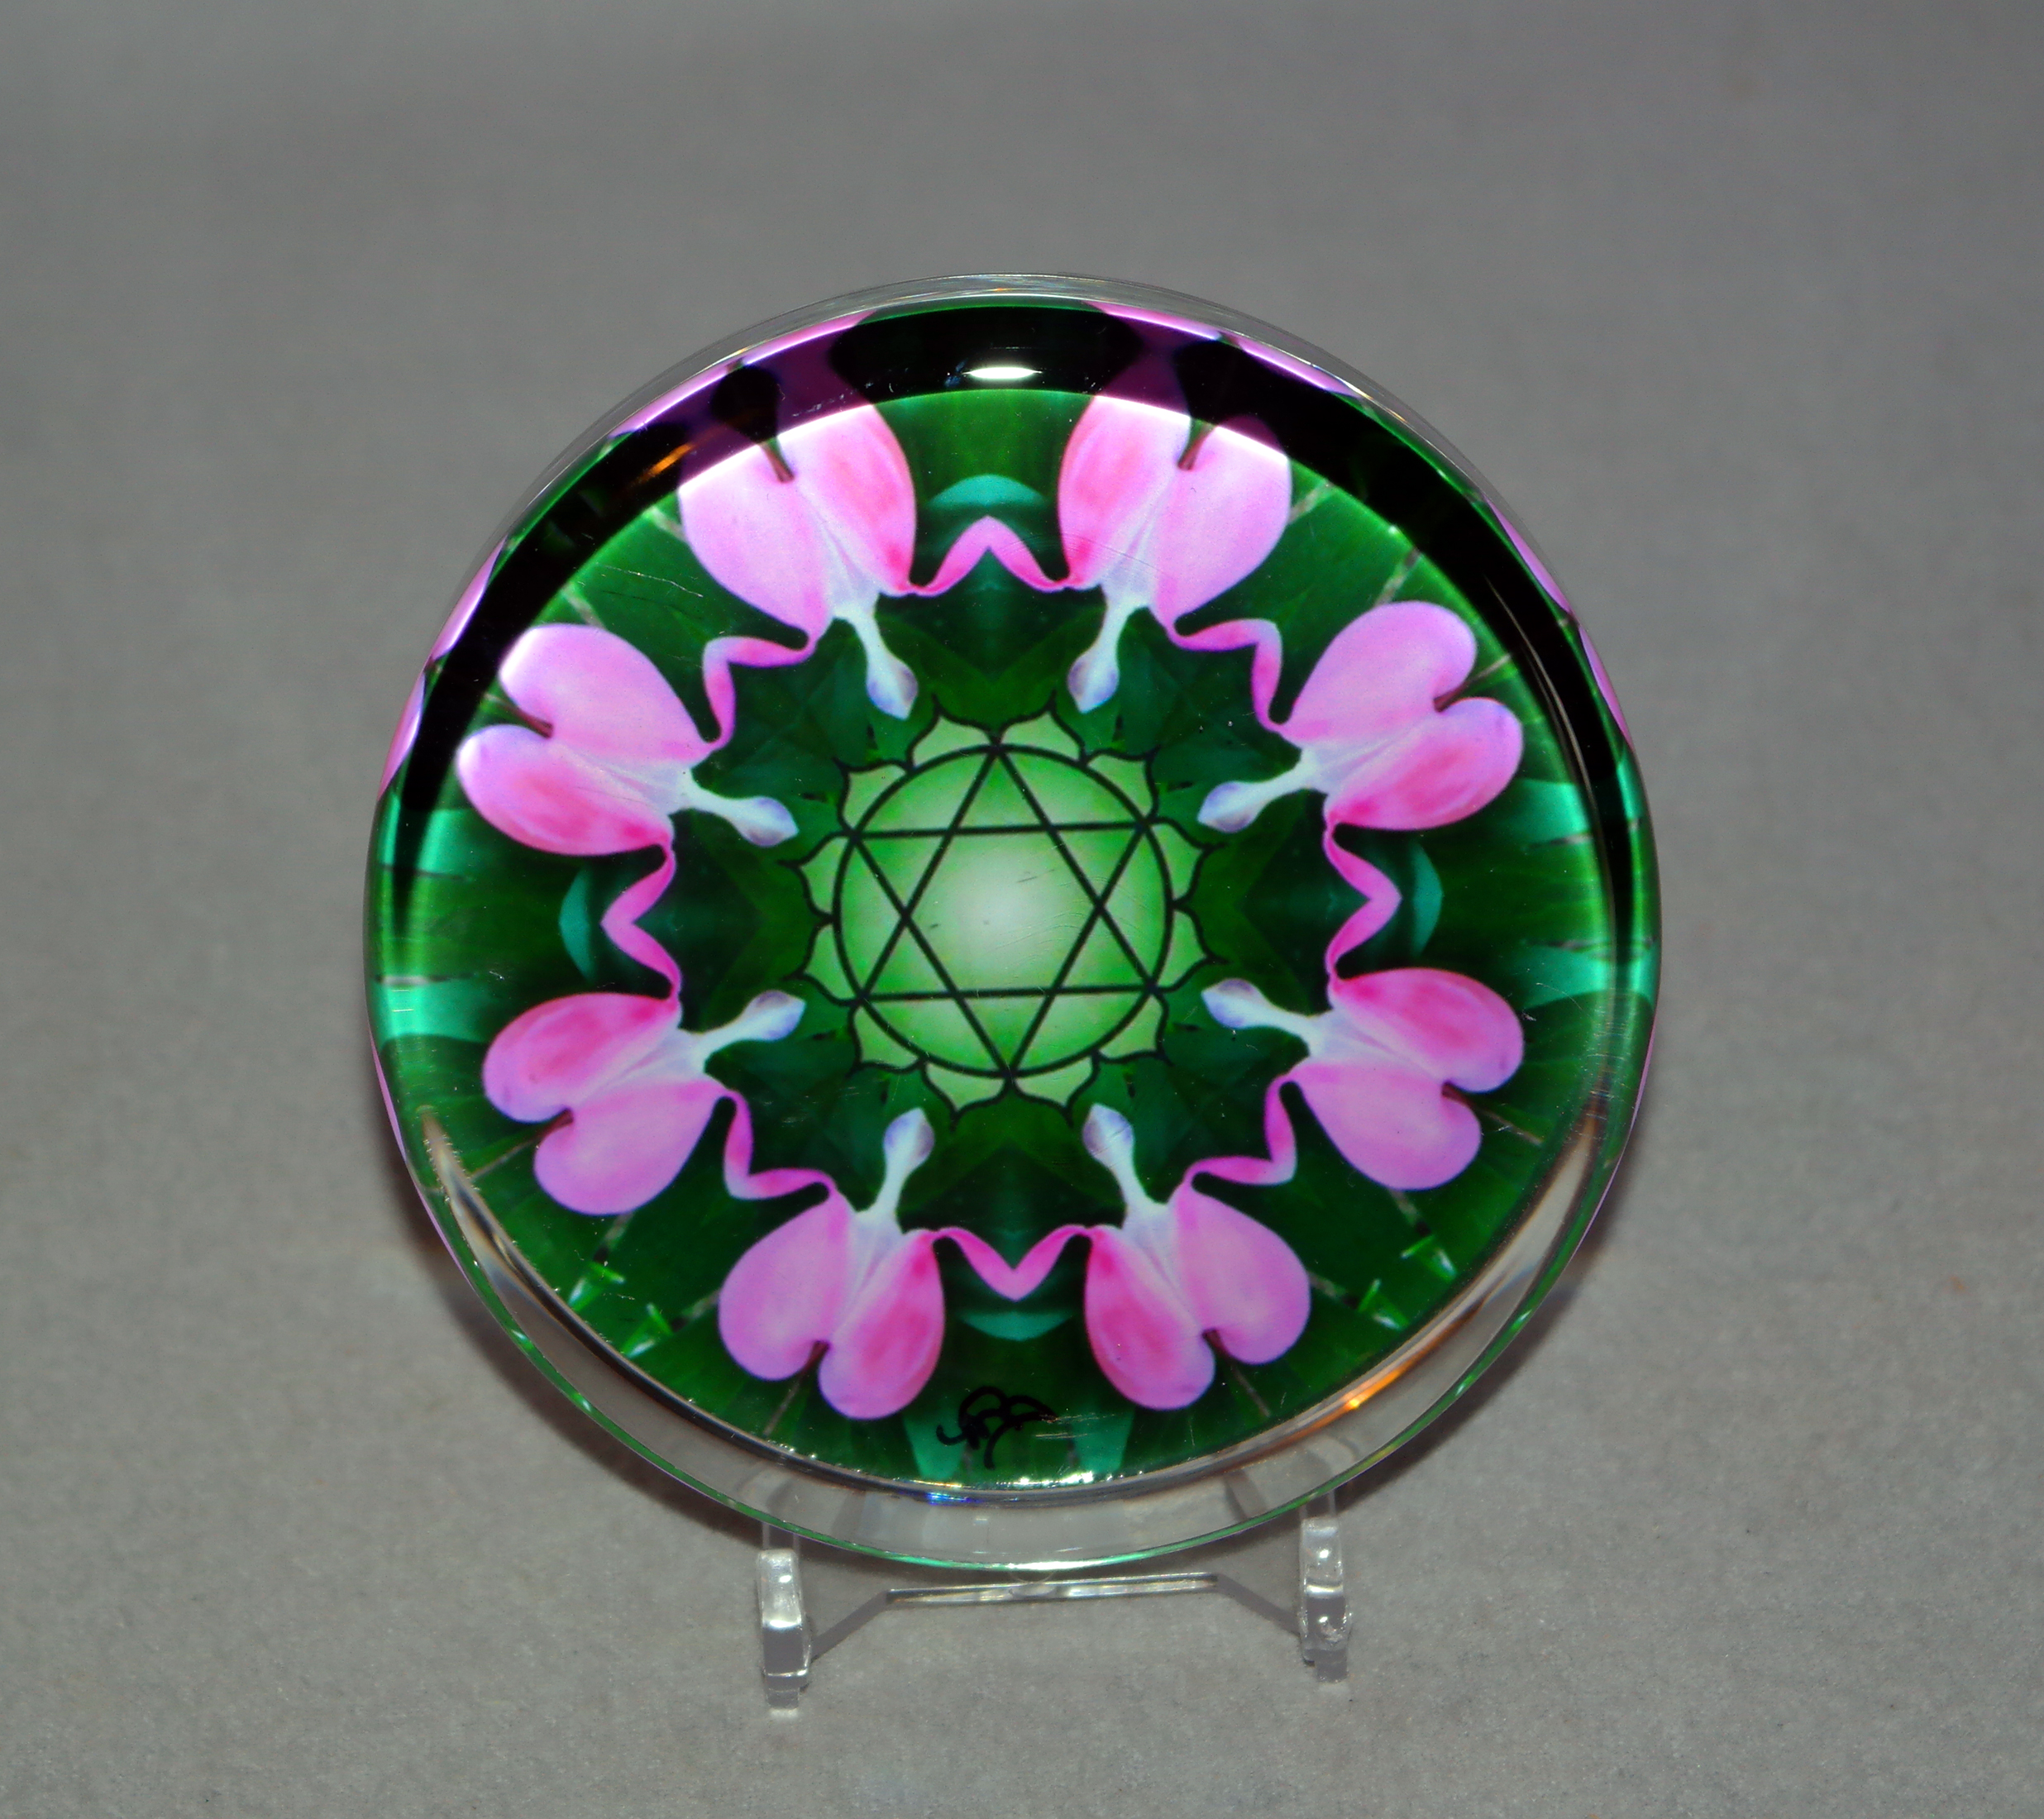 Glass Paperweight Heart Chakra Mandala Desk Accessory Bosses Gift Teacher Gift Coworker Gift 2